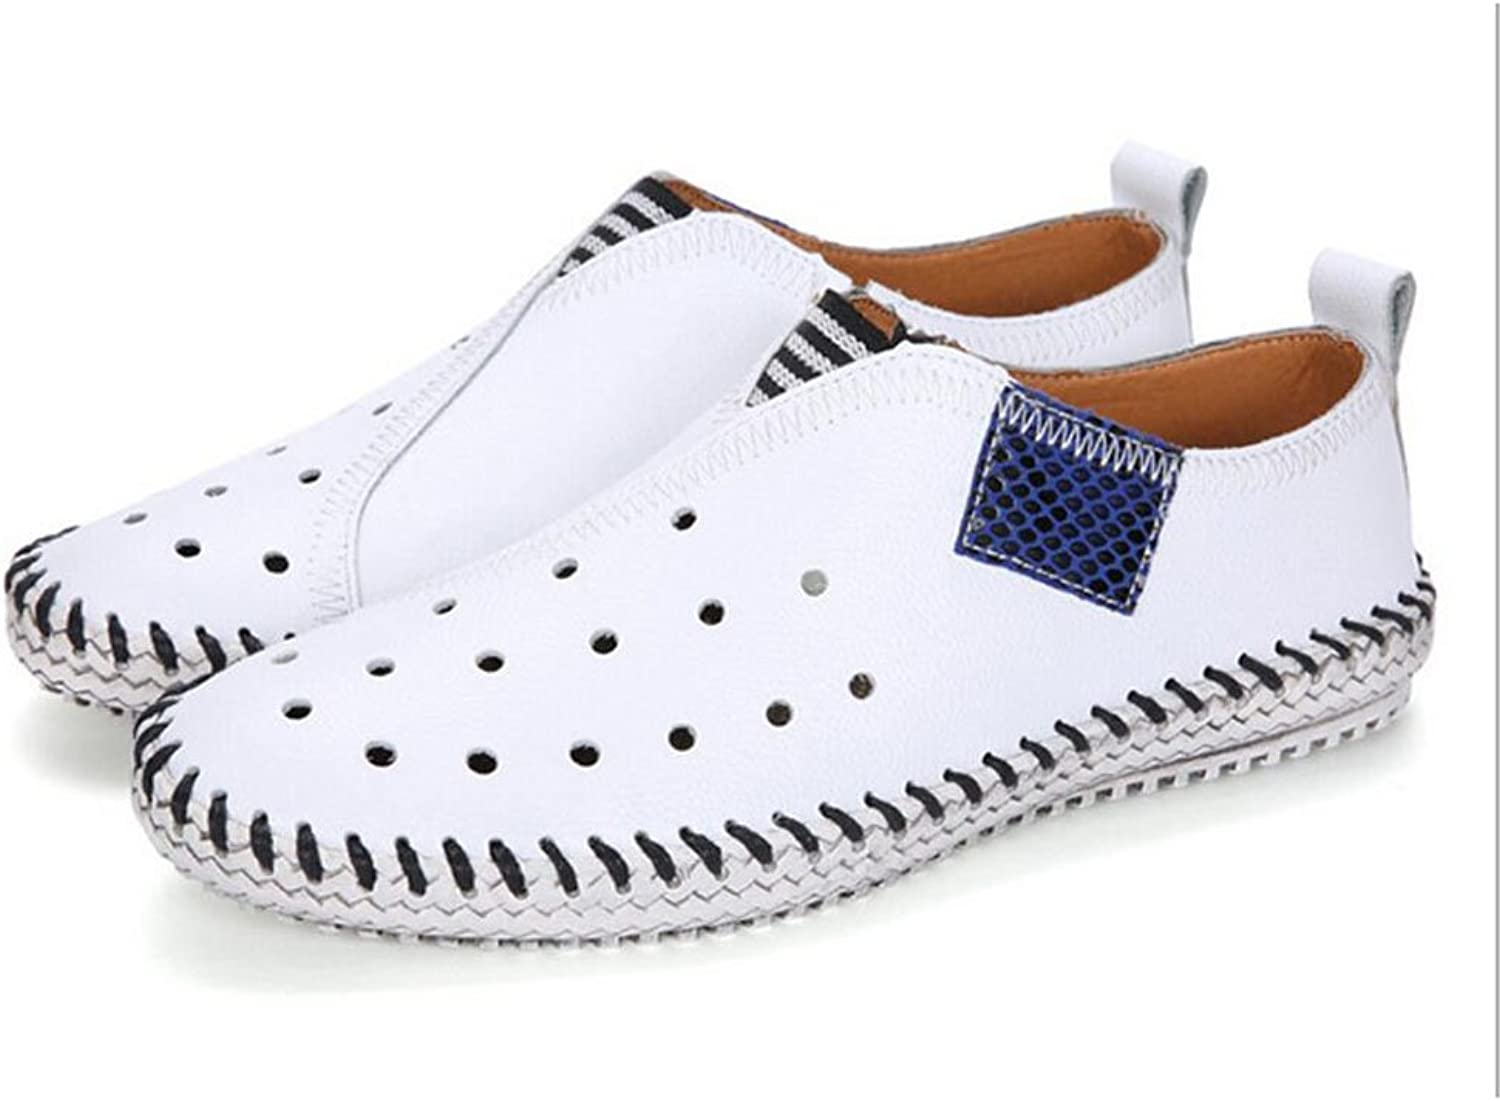 QSYUAN Men's New Fashion Wild Casual Flat shoes & Comfortable Wear-Resistant Cushioning Decompression Breathable Lazy shoes & Driving & Dating Loafers&Slip-Ons,White,42